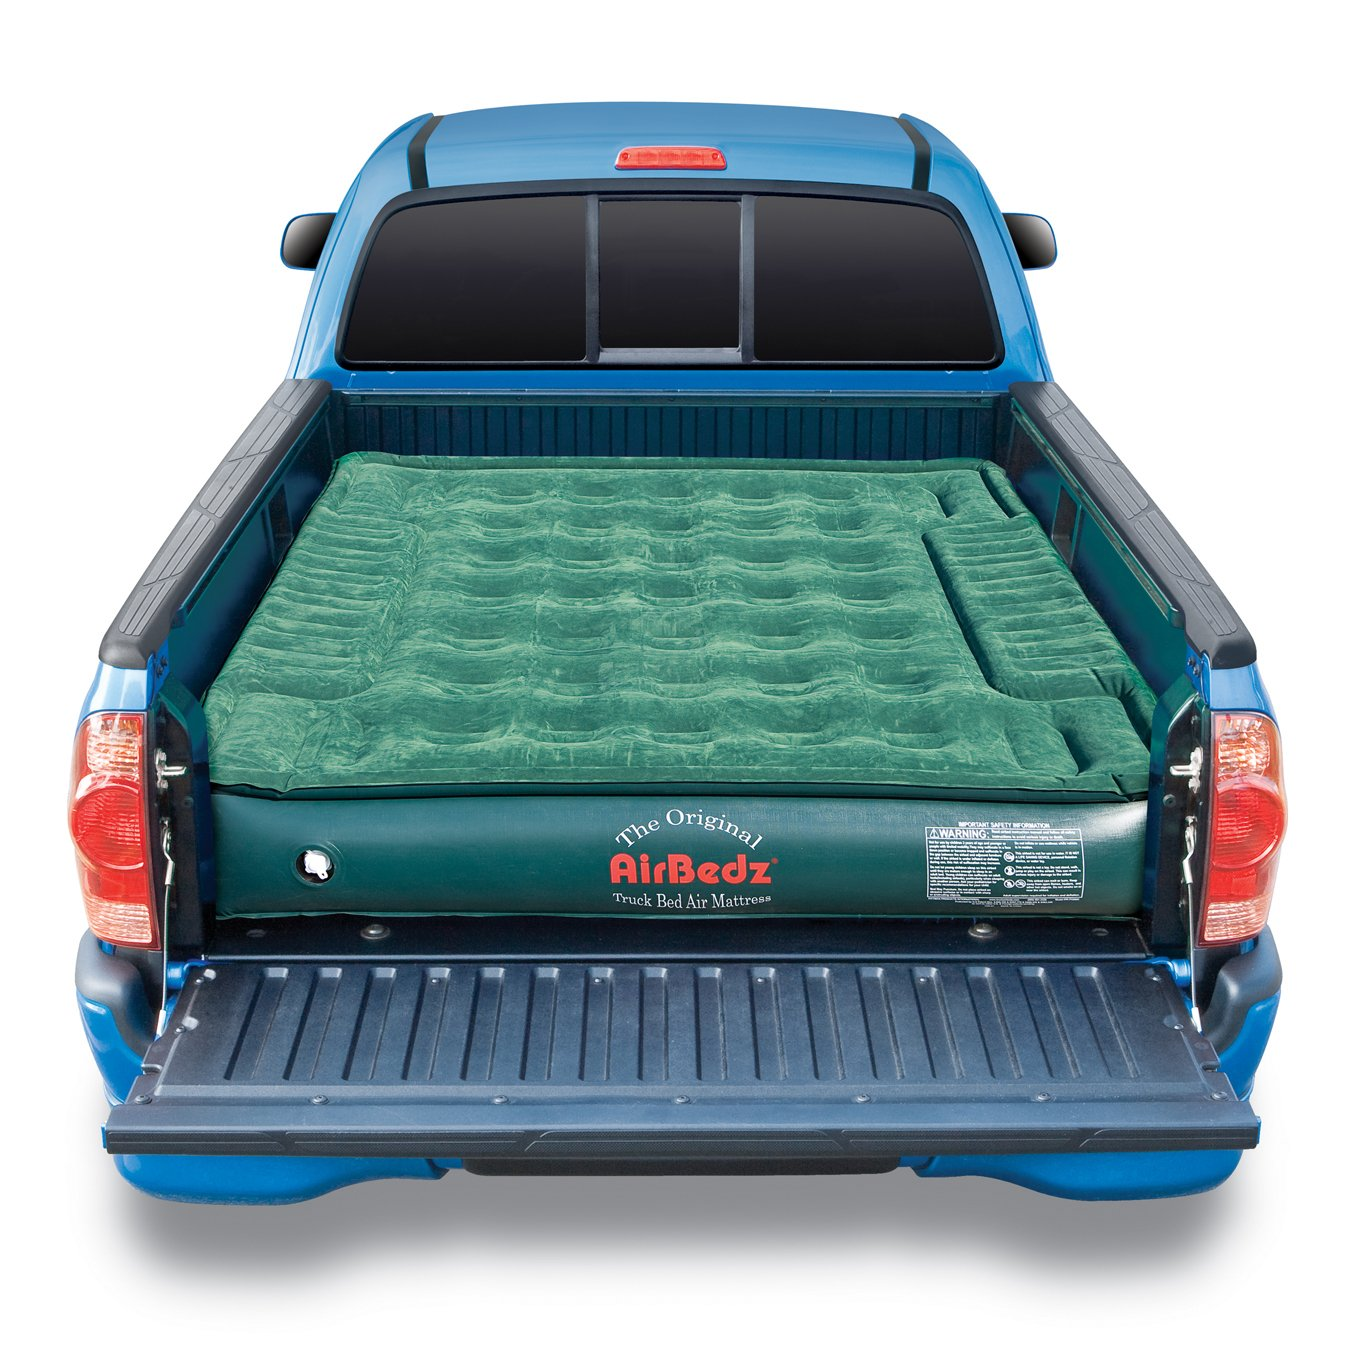 Amazon.com AirBedz Lite (PPI PV203C) Mid-Size 6u0027-6.5u0027 Short Truck Bed Air Mattress (72  x 55  x 12  Inflated) Automotive  sc 1 st  Amazon.com & Amazon.com: AirBedz Lite (PPI PV203C) Mid-Size 6u0027-6.5u0027 Short Truck ...